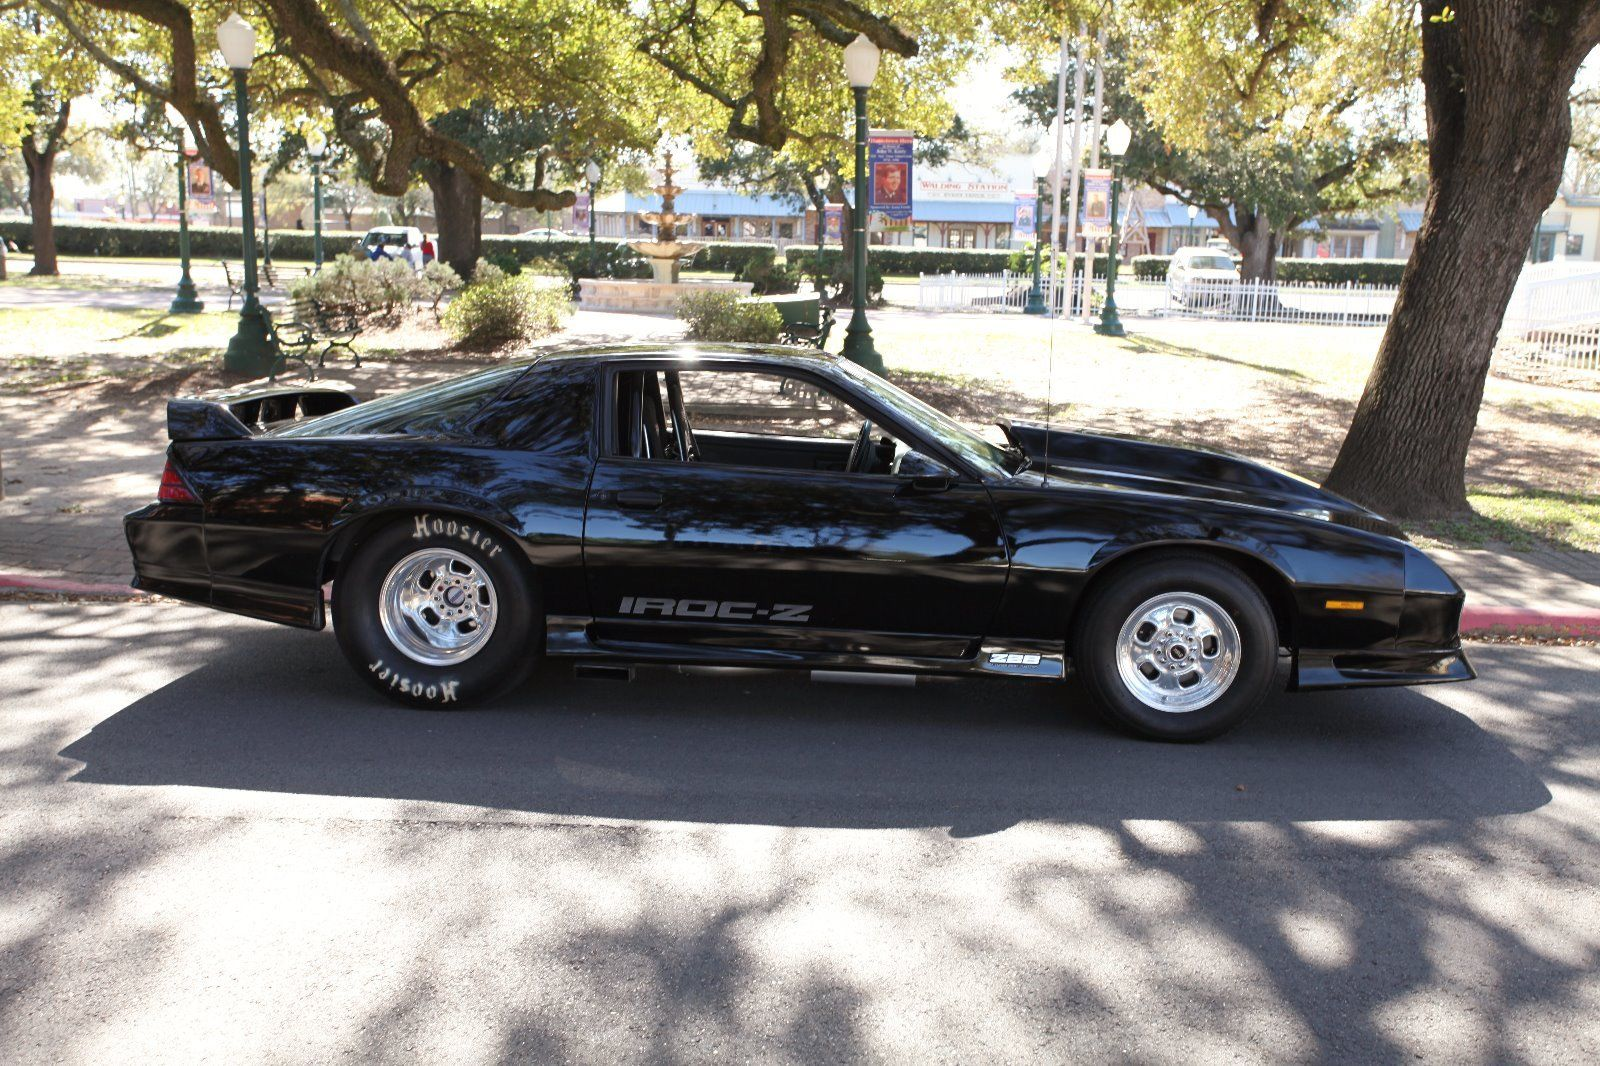 bangshift com money no object this 1991 chevrolet camaro looks like a factory built pro street concept clean bangshift com this 1991 chevrolet camaro looks like a